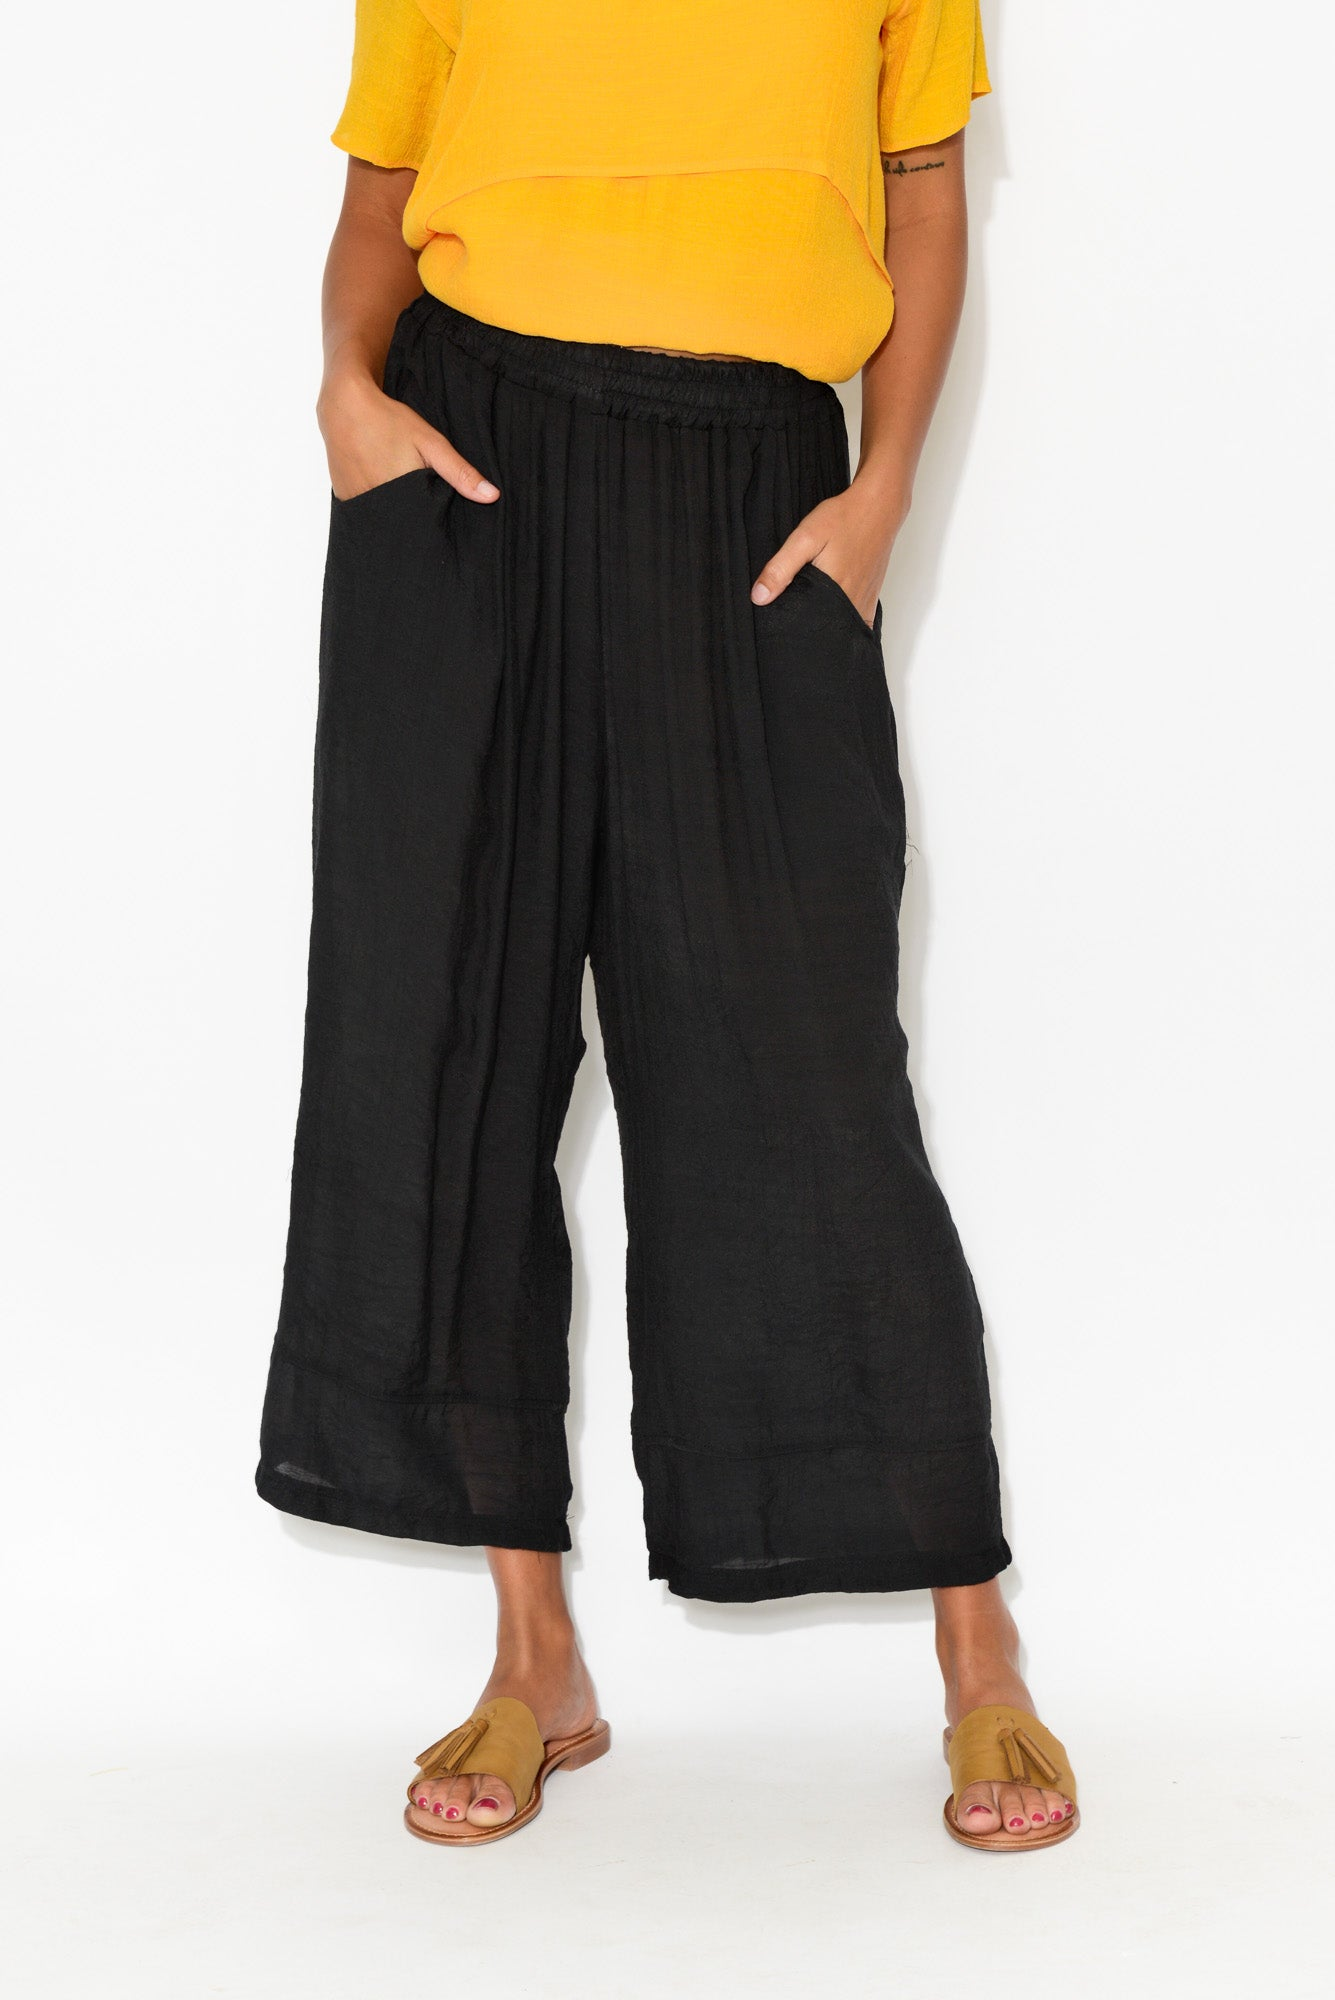 Sadie Black Wide Leg Pant